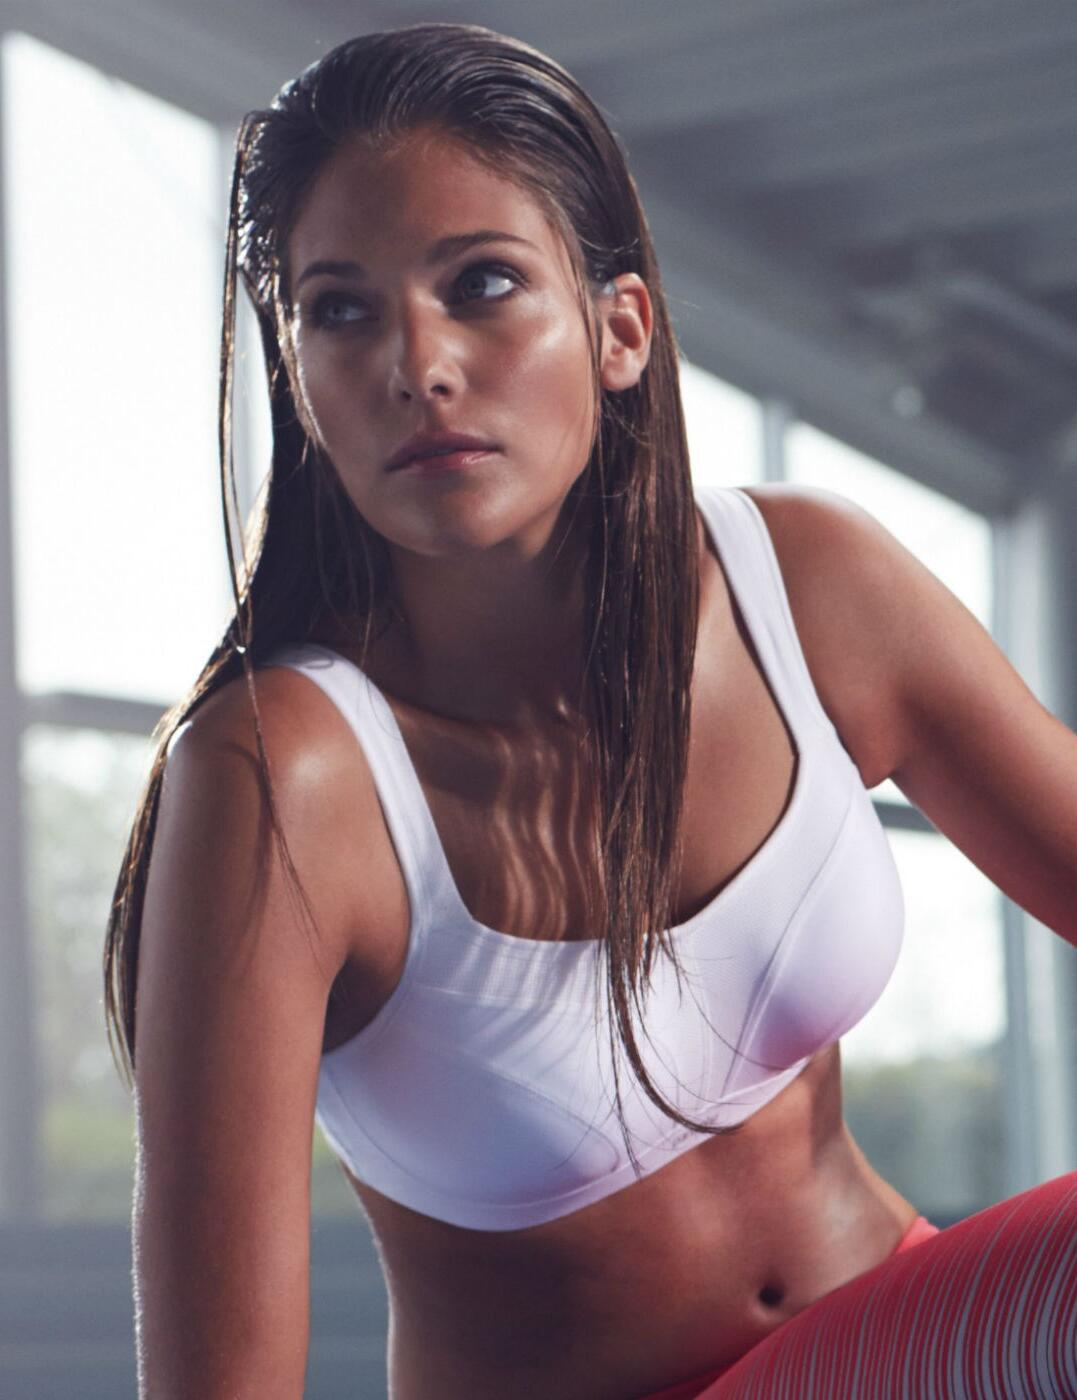 Panache-Sports-Bra-5021-Underwired-Moulded-Padded-High-Impact-Sports-Bra